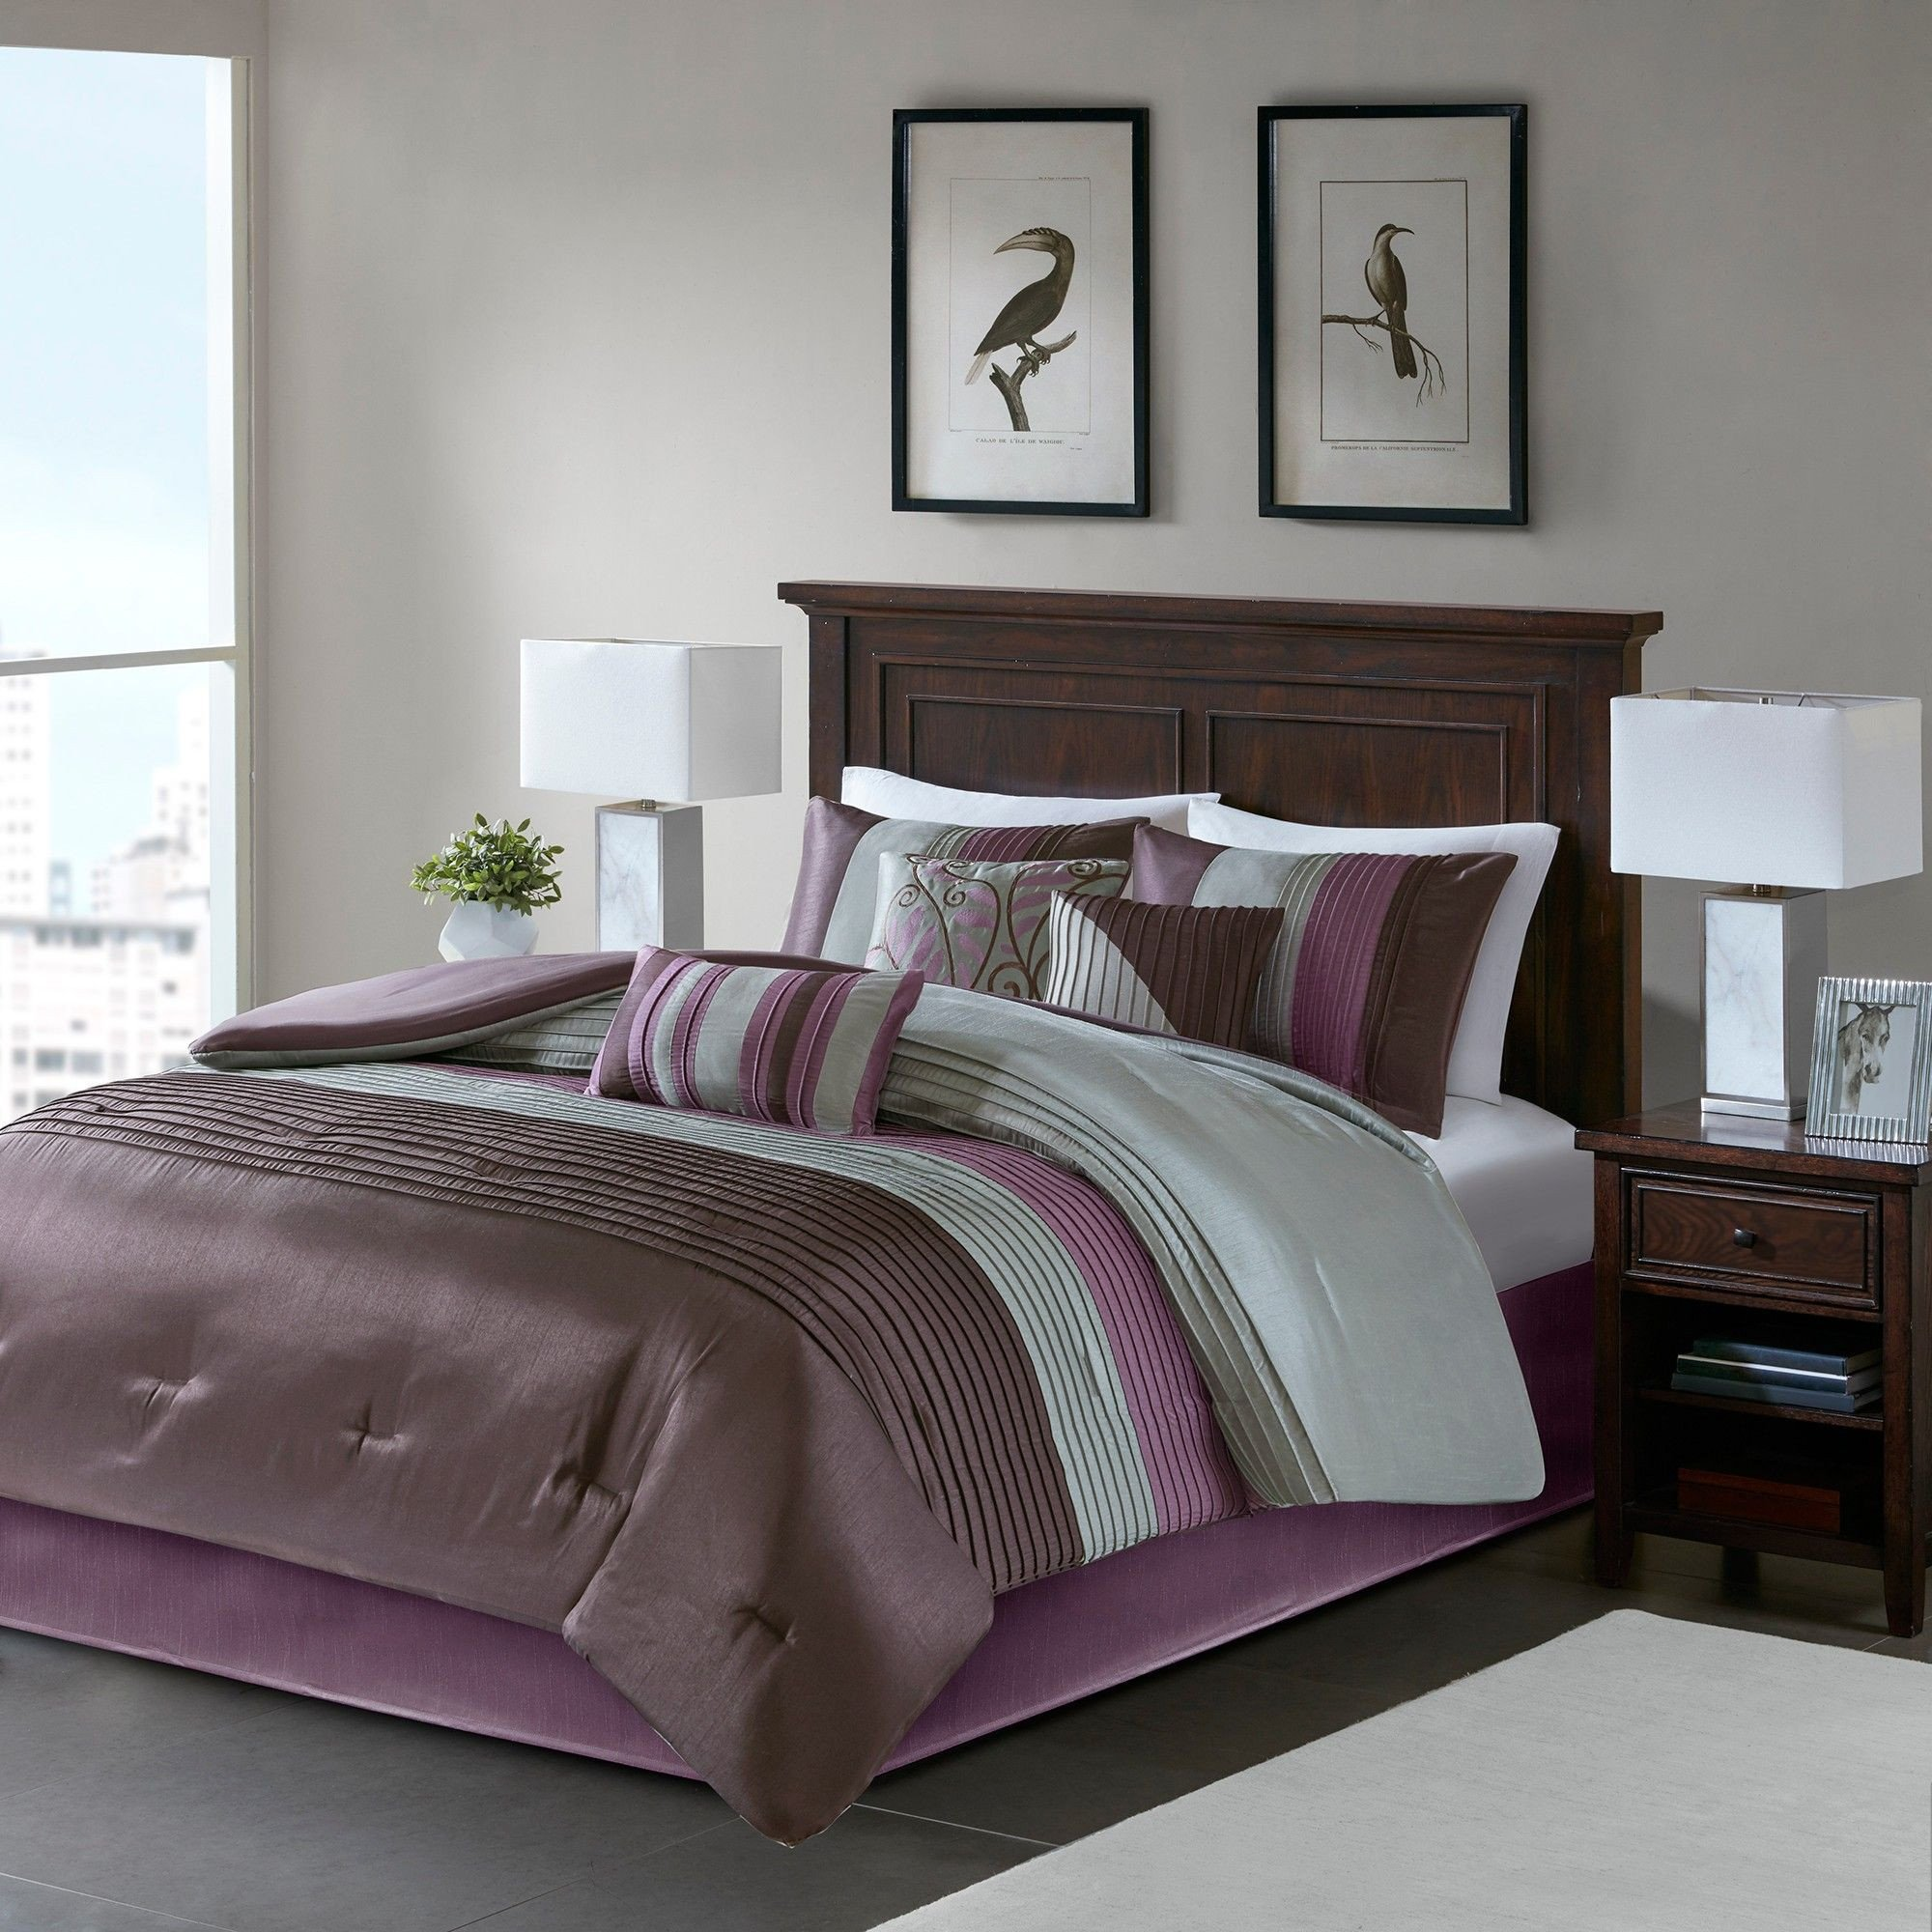 7 Piece Bedroom Set Unique Salem 7 Piece forter Set Purple California King In